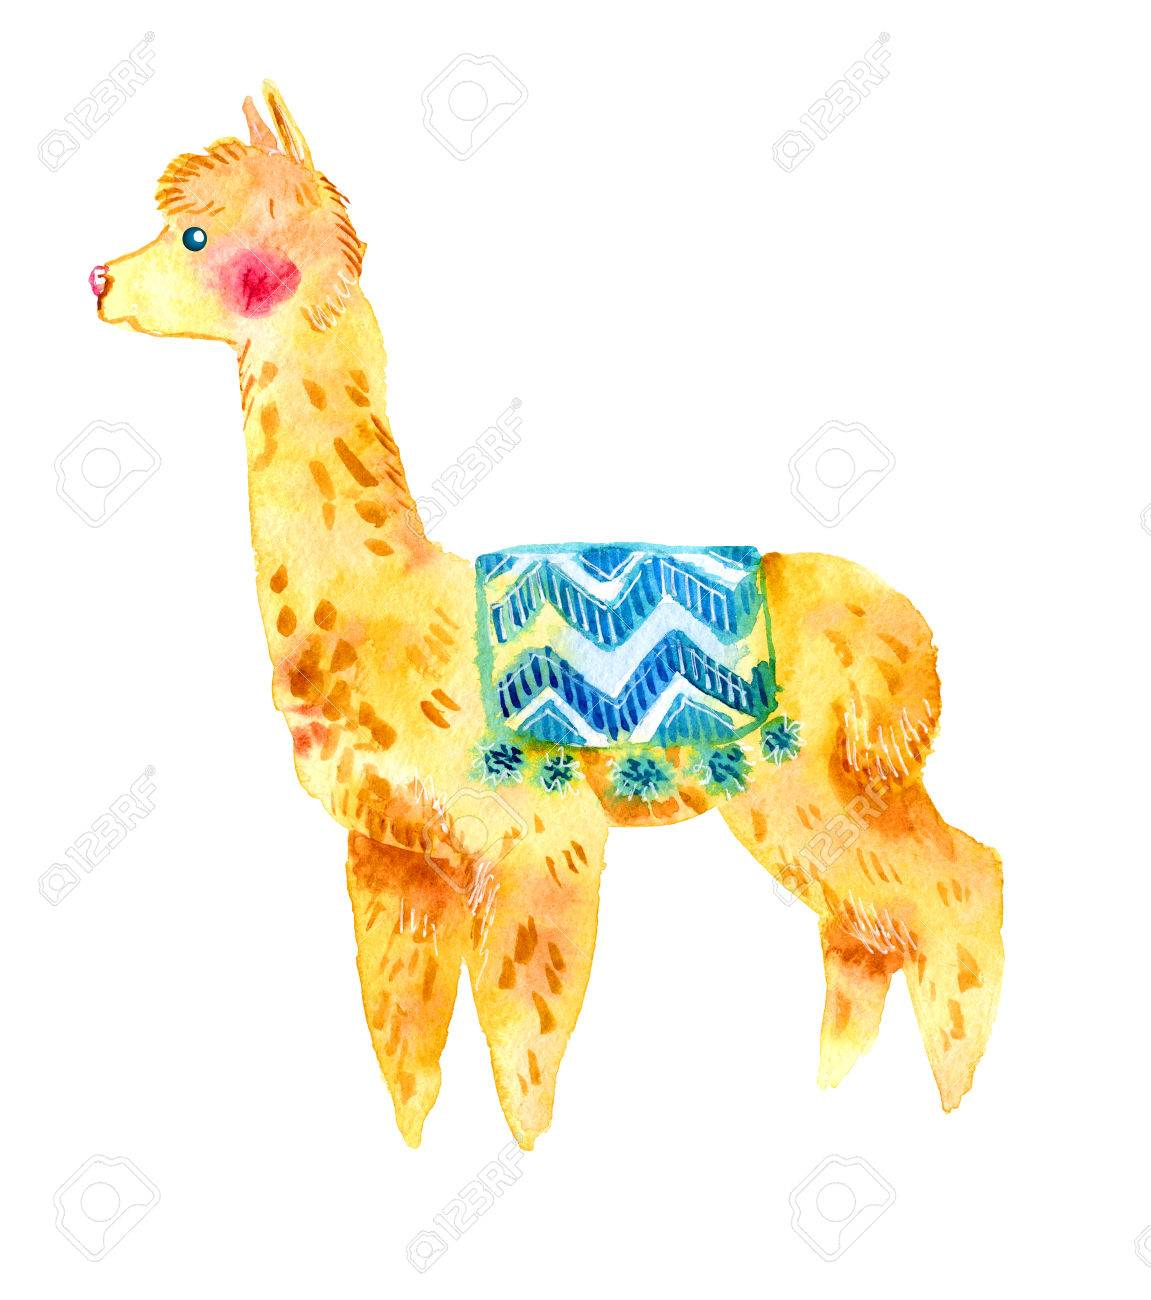 Watercolor Llama Alpaca Isolated On White Background Stock Photo 1151x1300